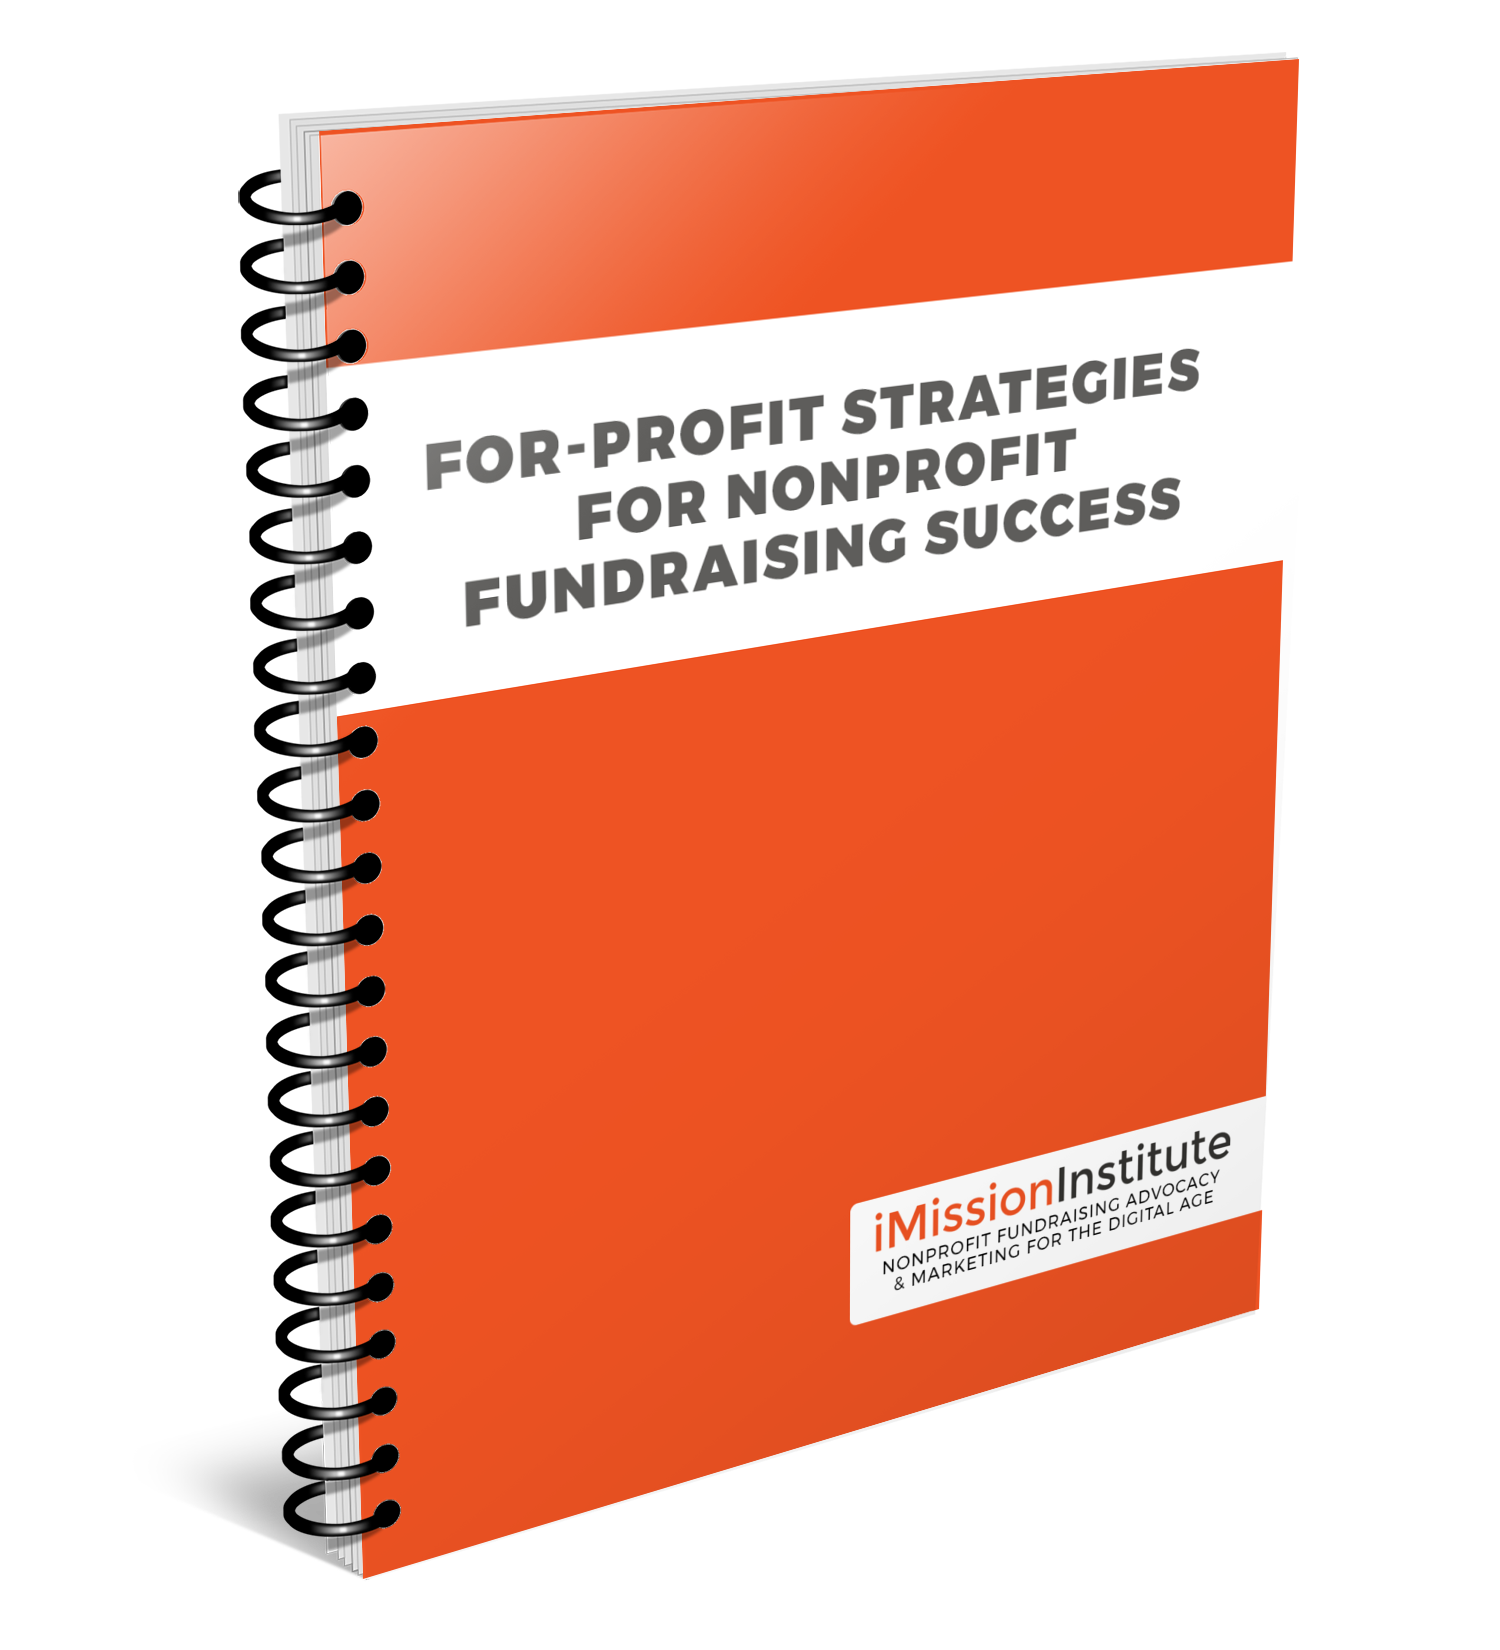 for profit strategies for nonprofit fundraising cover image